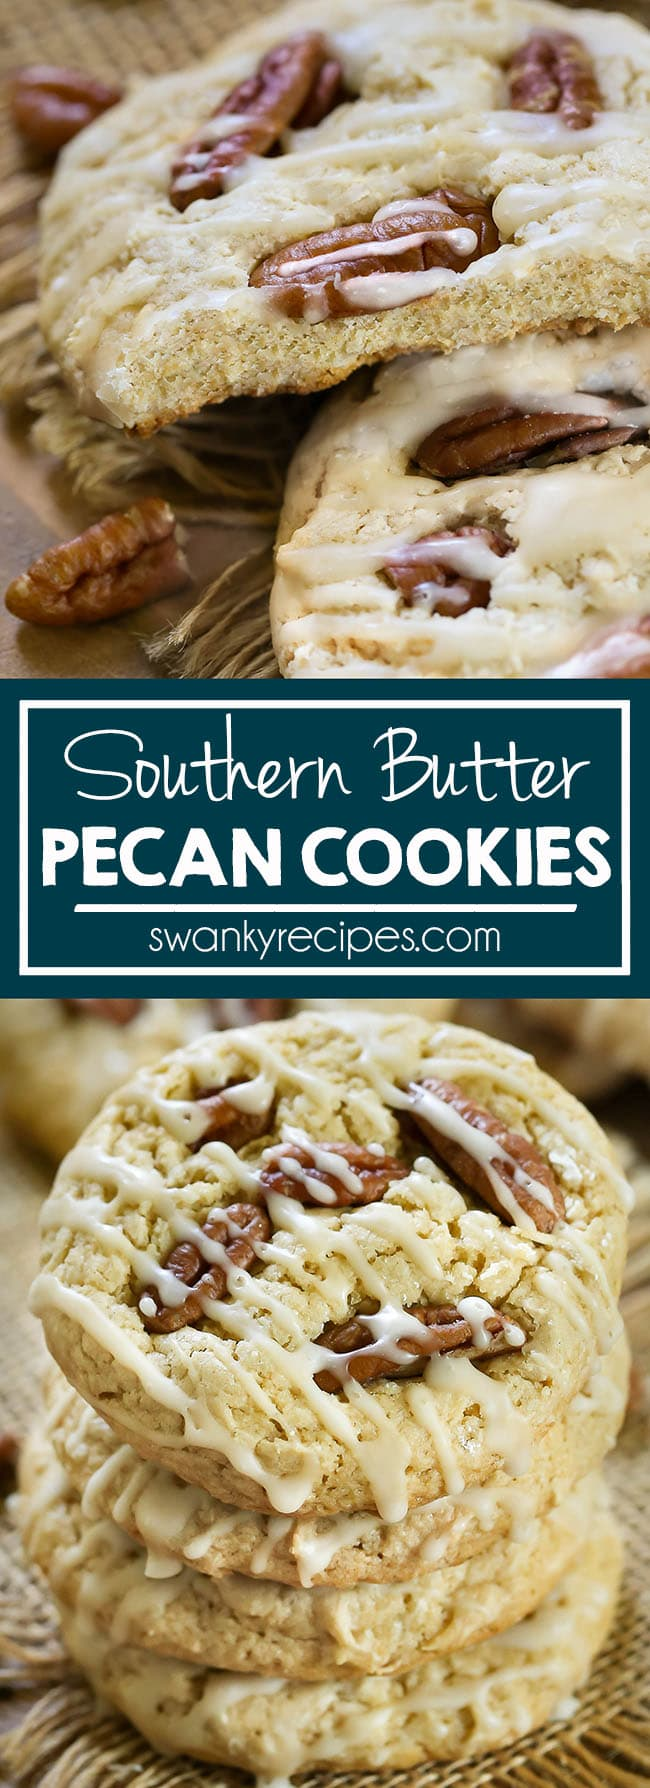 Butter Pecan Cookies - Chewy maple butter cookies with pecans. A classic southern cookie recipe that is perfect for fall and holiday baking like Christmas and Thanksgiving. These butter pecan cookies feature to recipe versions; 1 cake mix cookie recipe and 1 from scratch recipe.